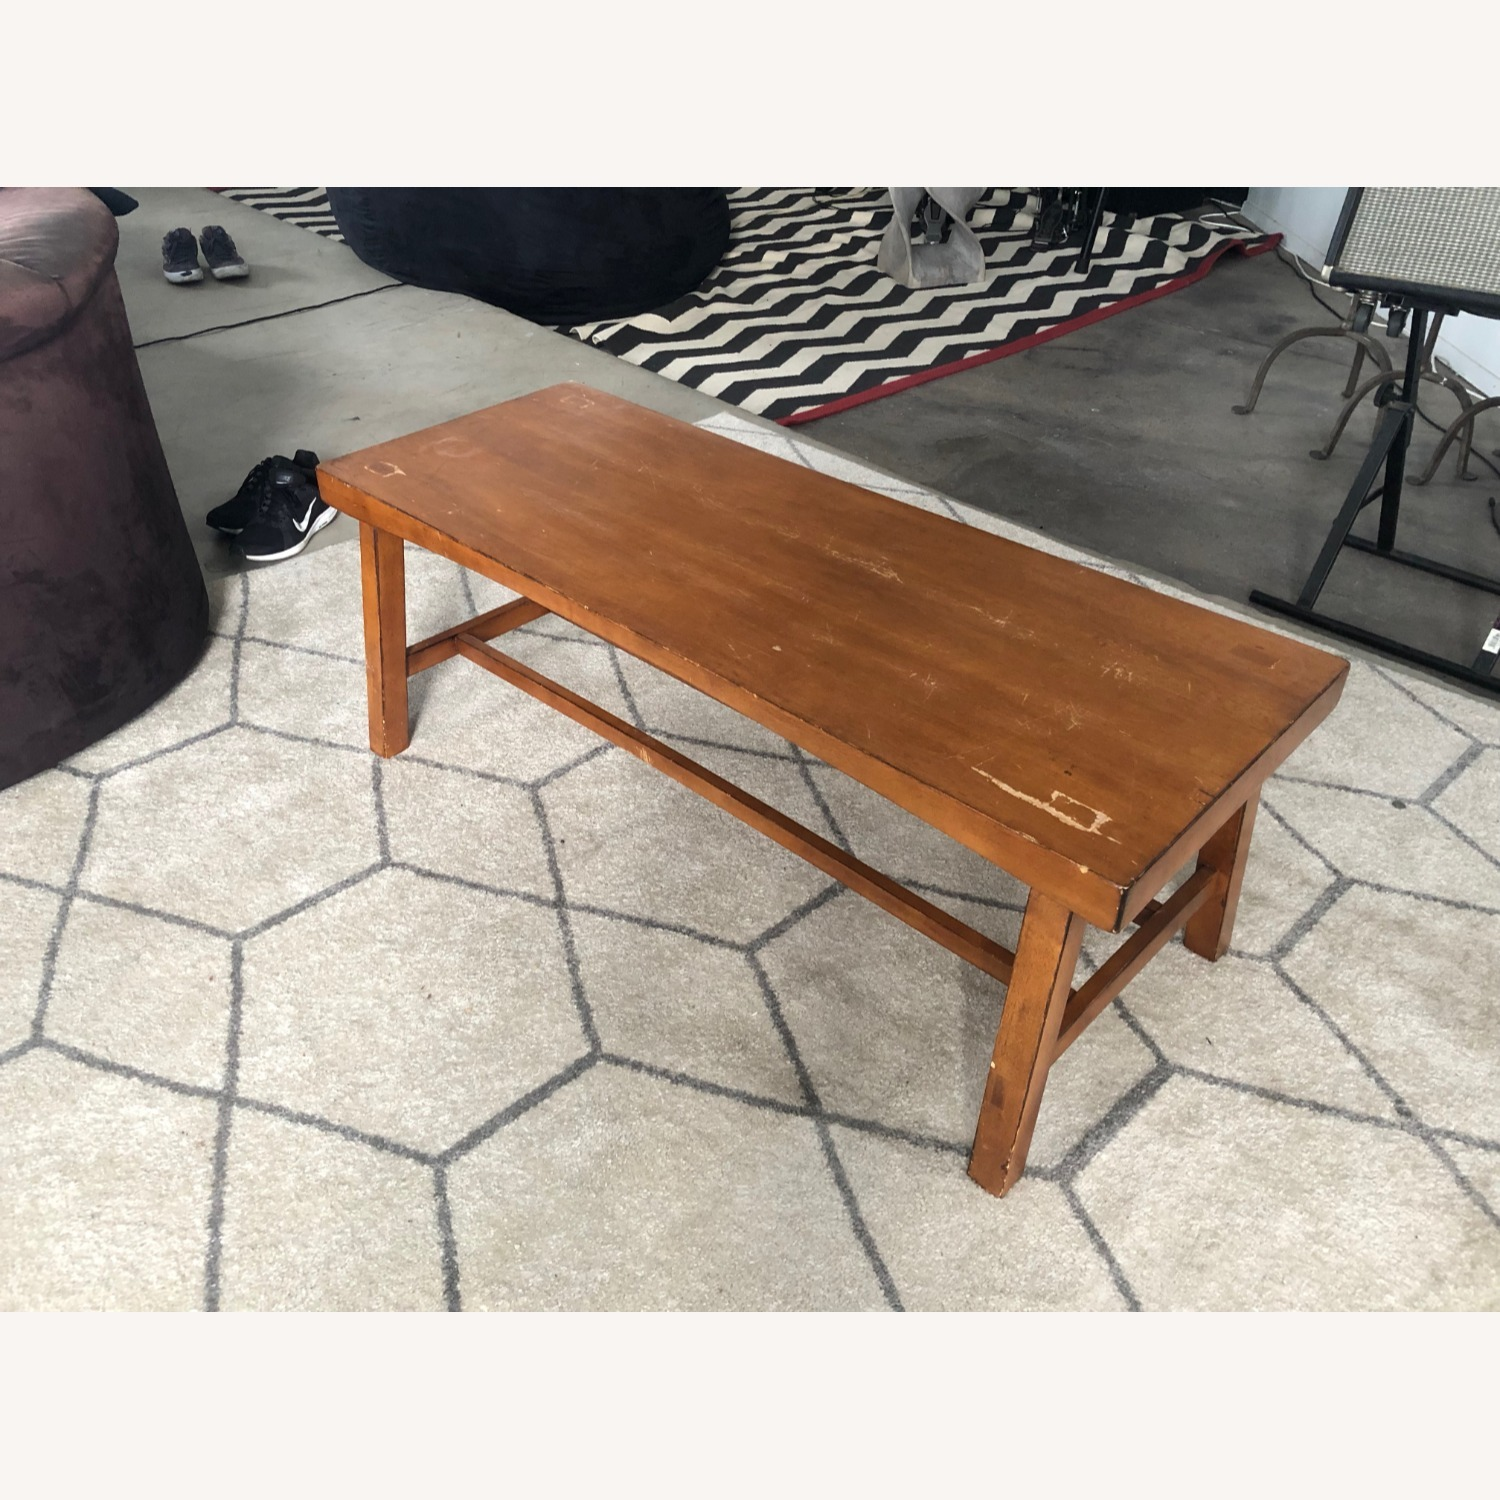 Pottery Barn Tibetan Coffee Table - image-0